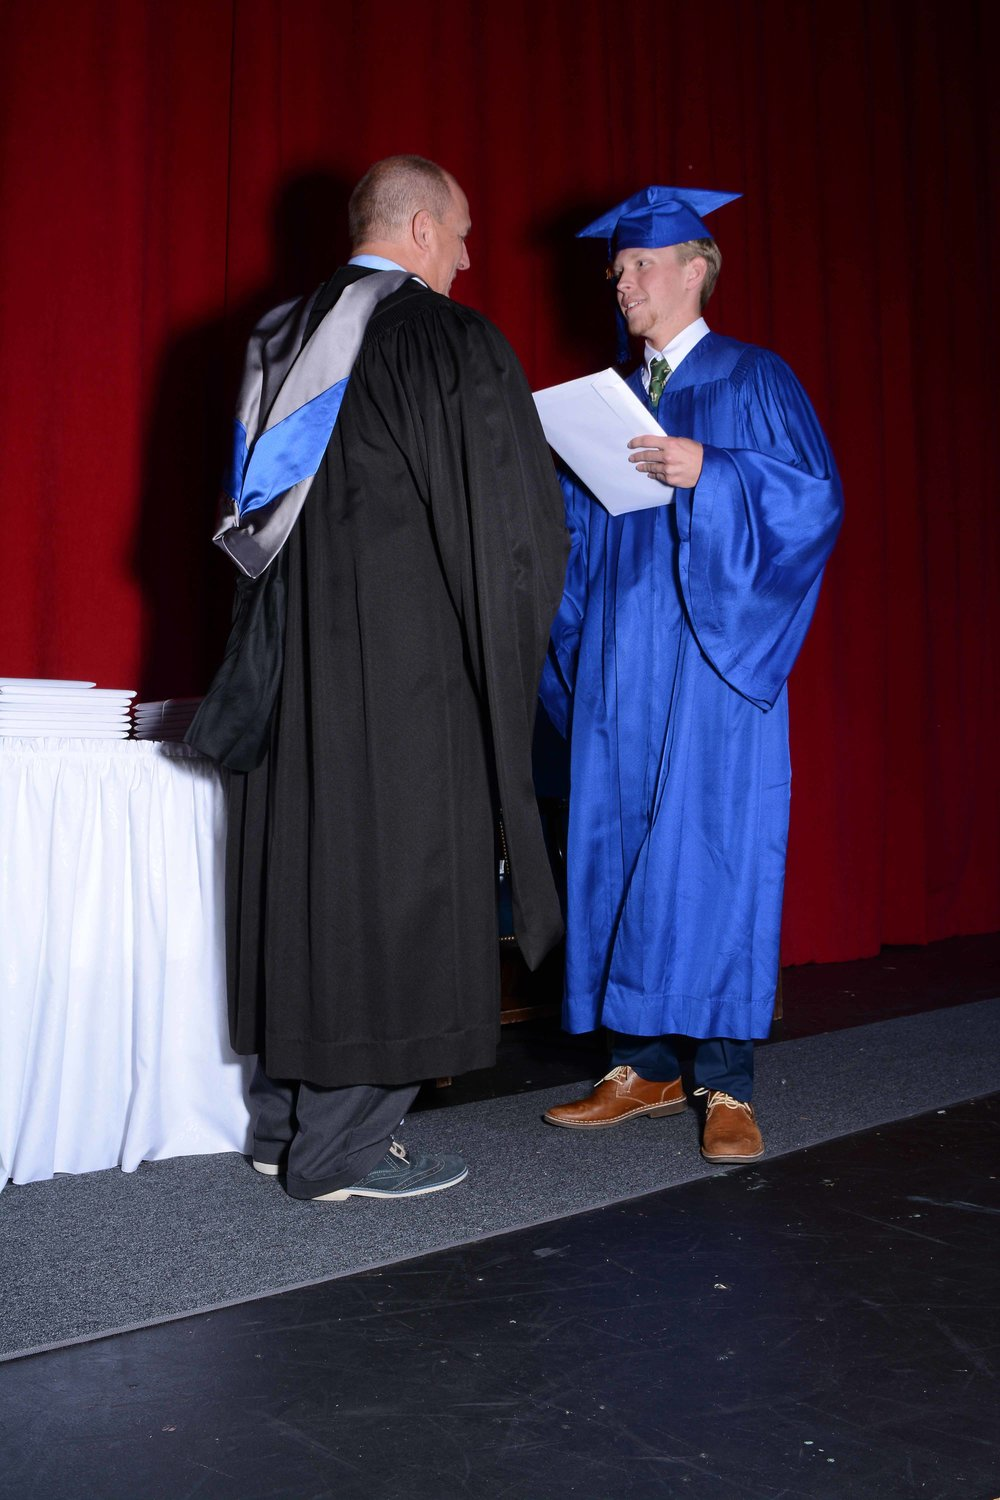 May14 Commencement131.jpg